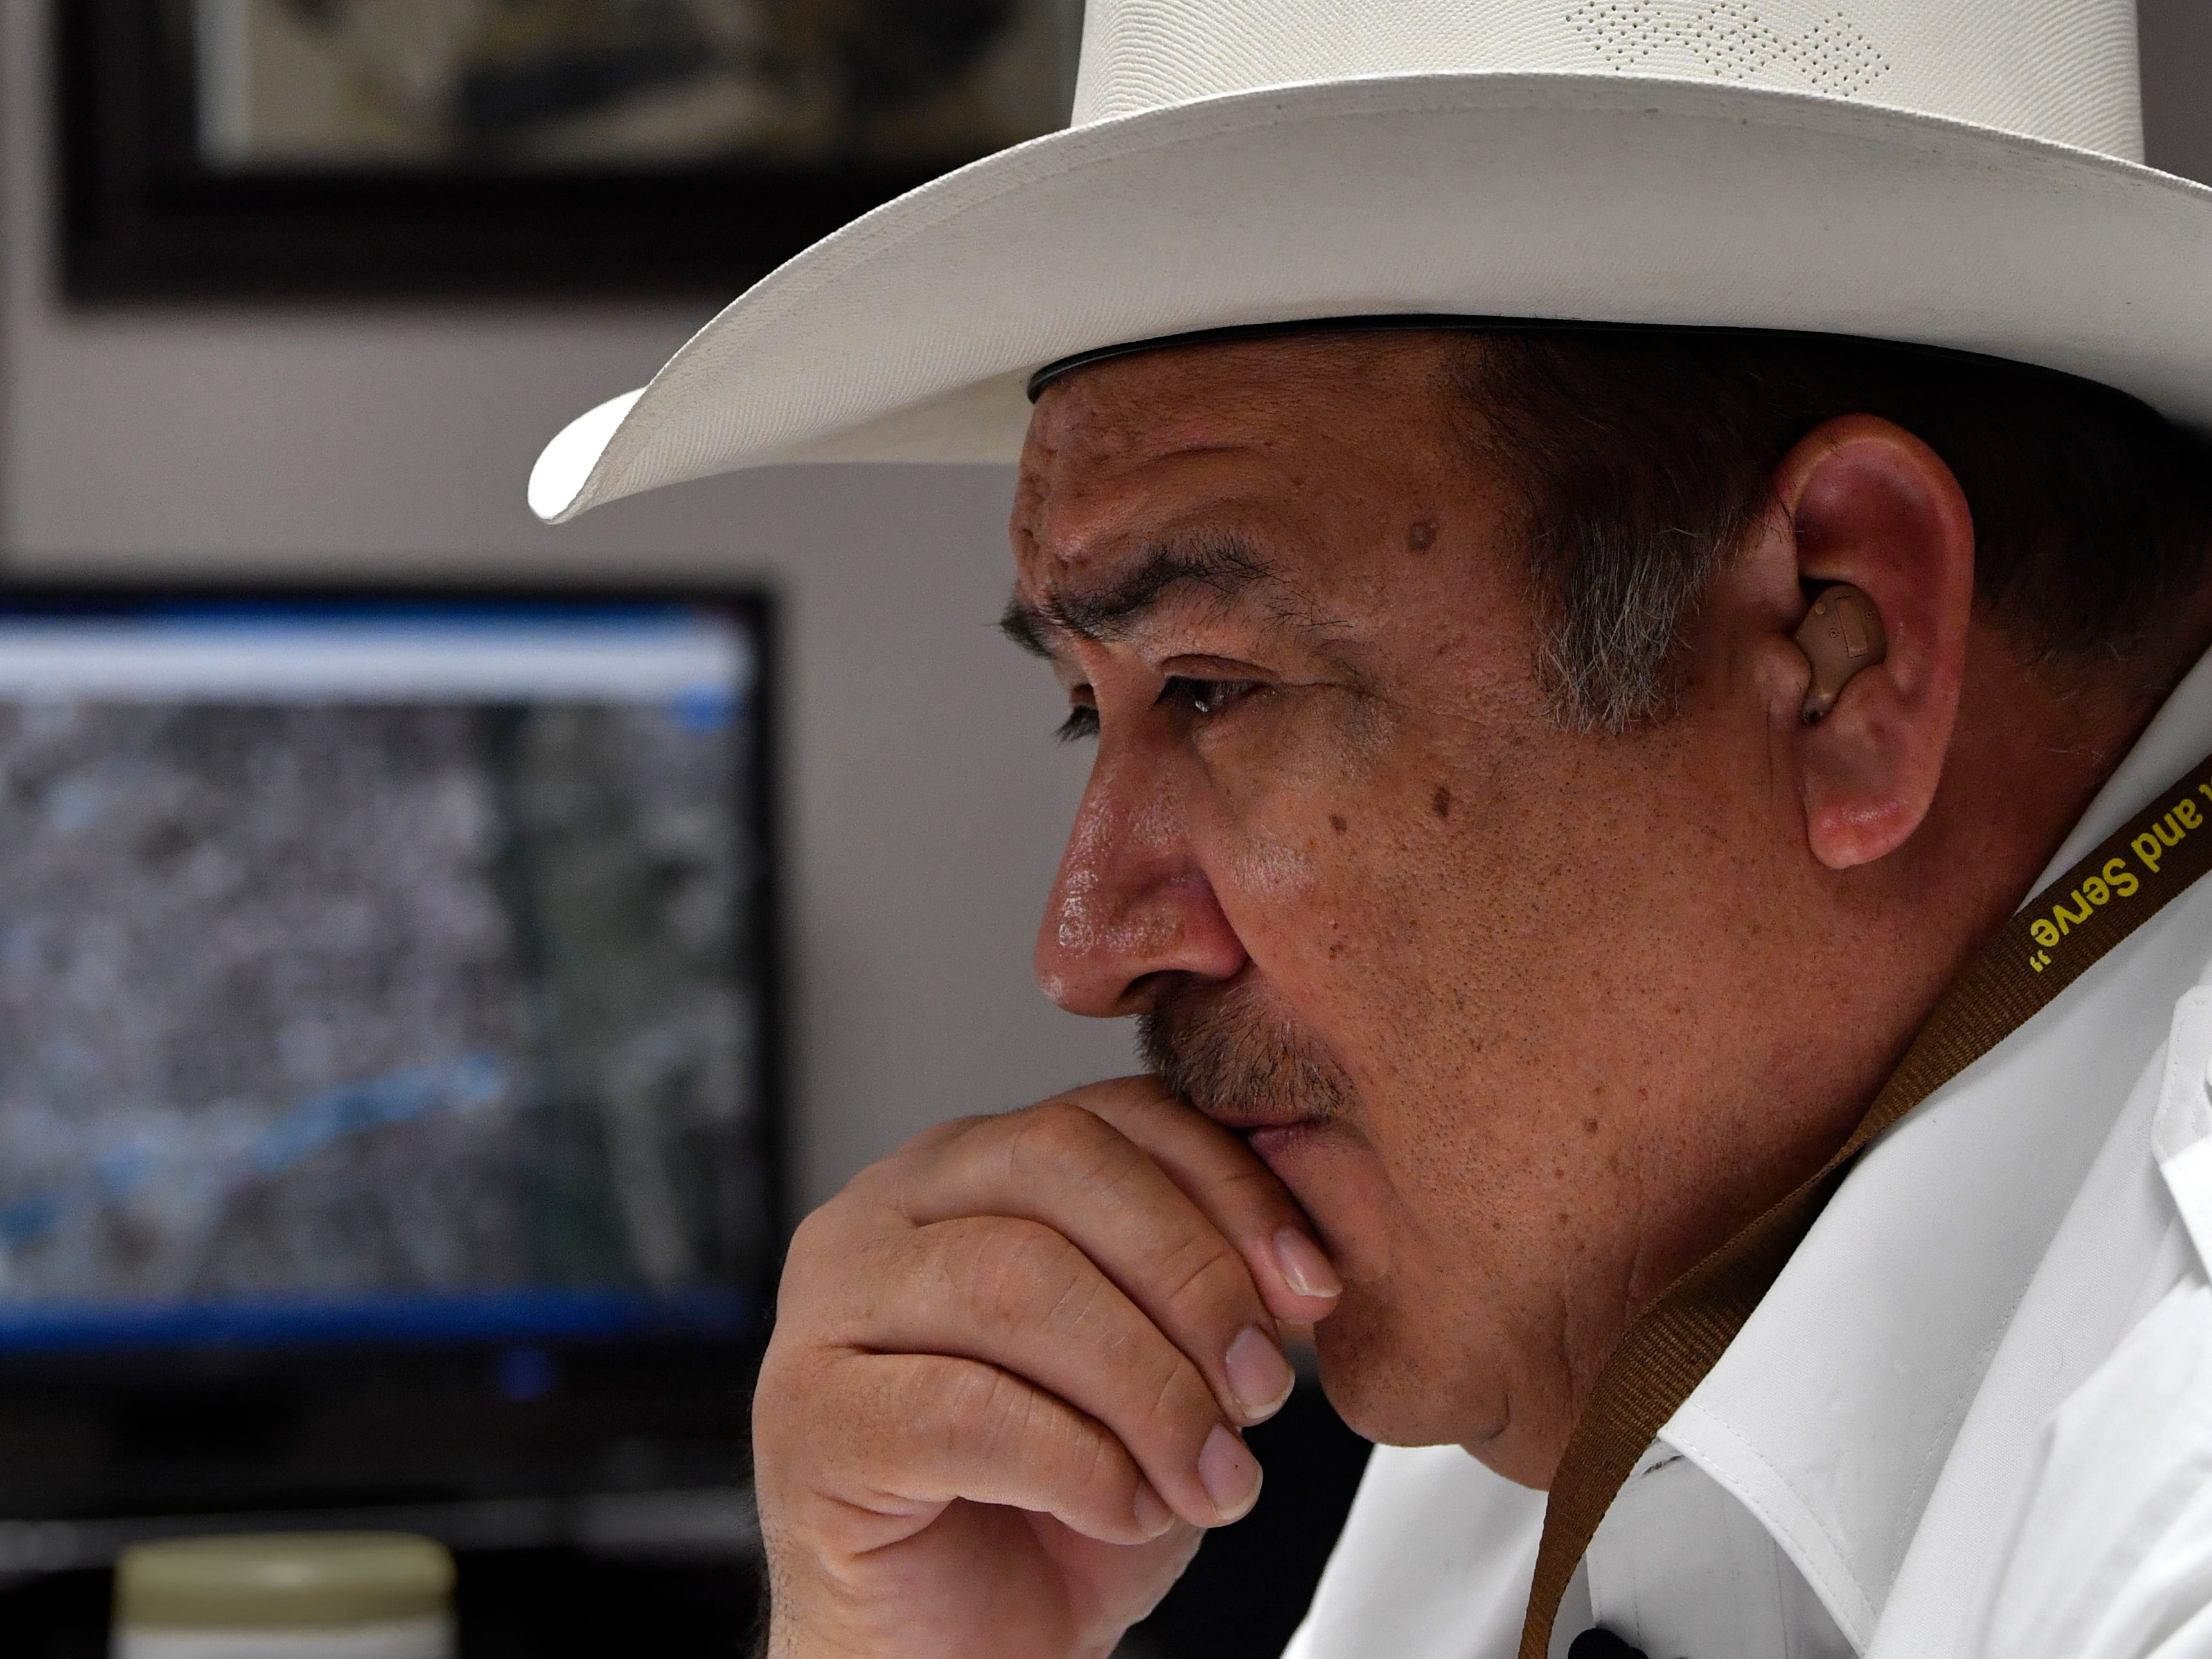 Maverick County Sheriff Tom Schmerber listens Wednesday Feb. 6, 2019 to a reporter's questions about the migrant caravan which has arrived in Piedras Negras.  A fifth generation Texan, the sheriff sits beneath a portrait of his German ancestor Joseph Schmerber who arrived in Texas during the Civil War.